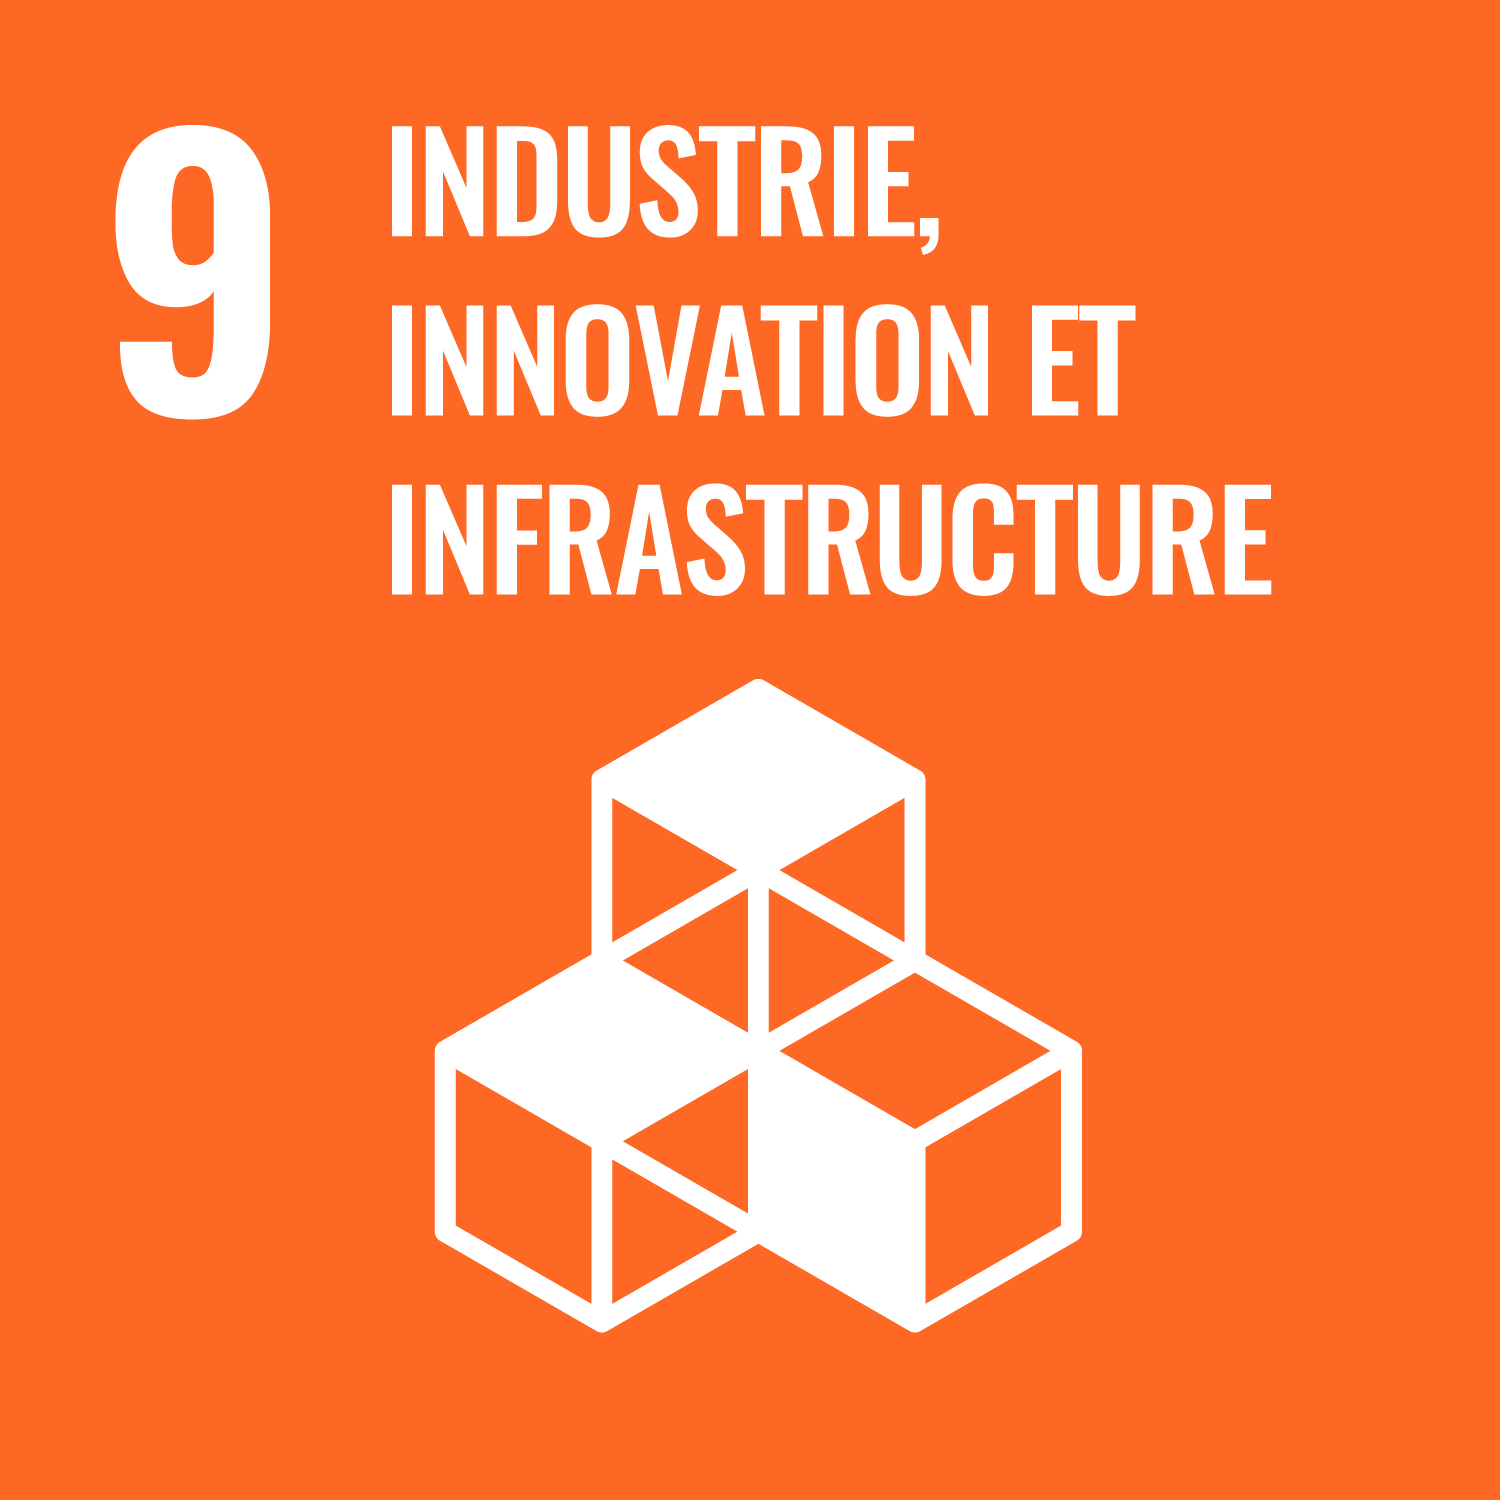 RSE 09 Industrie innovation infrastructure